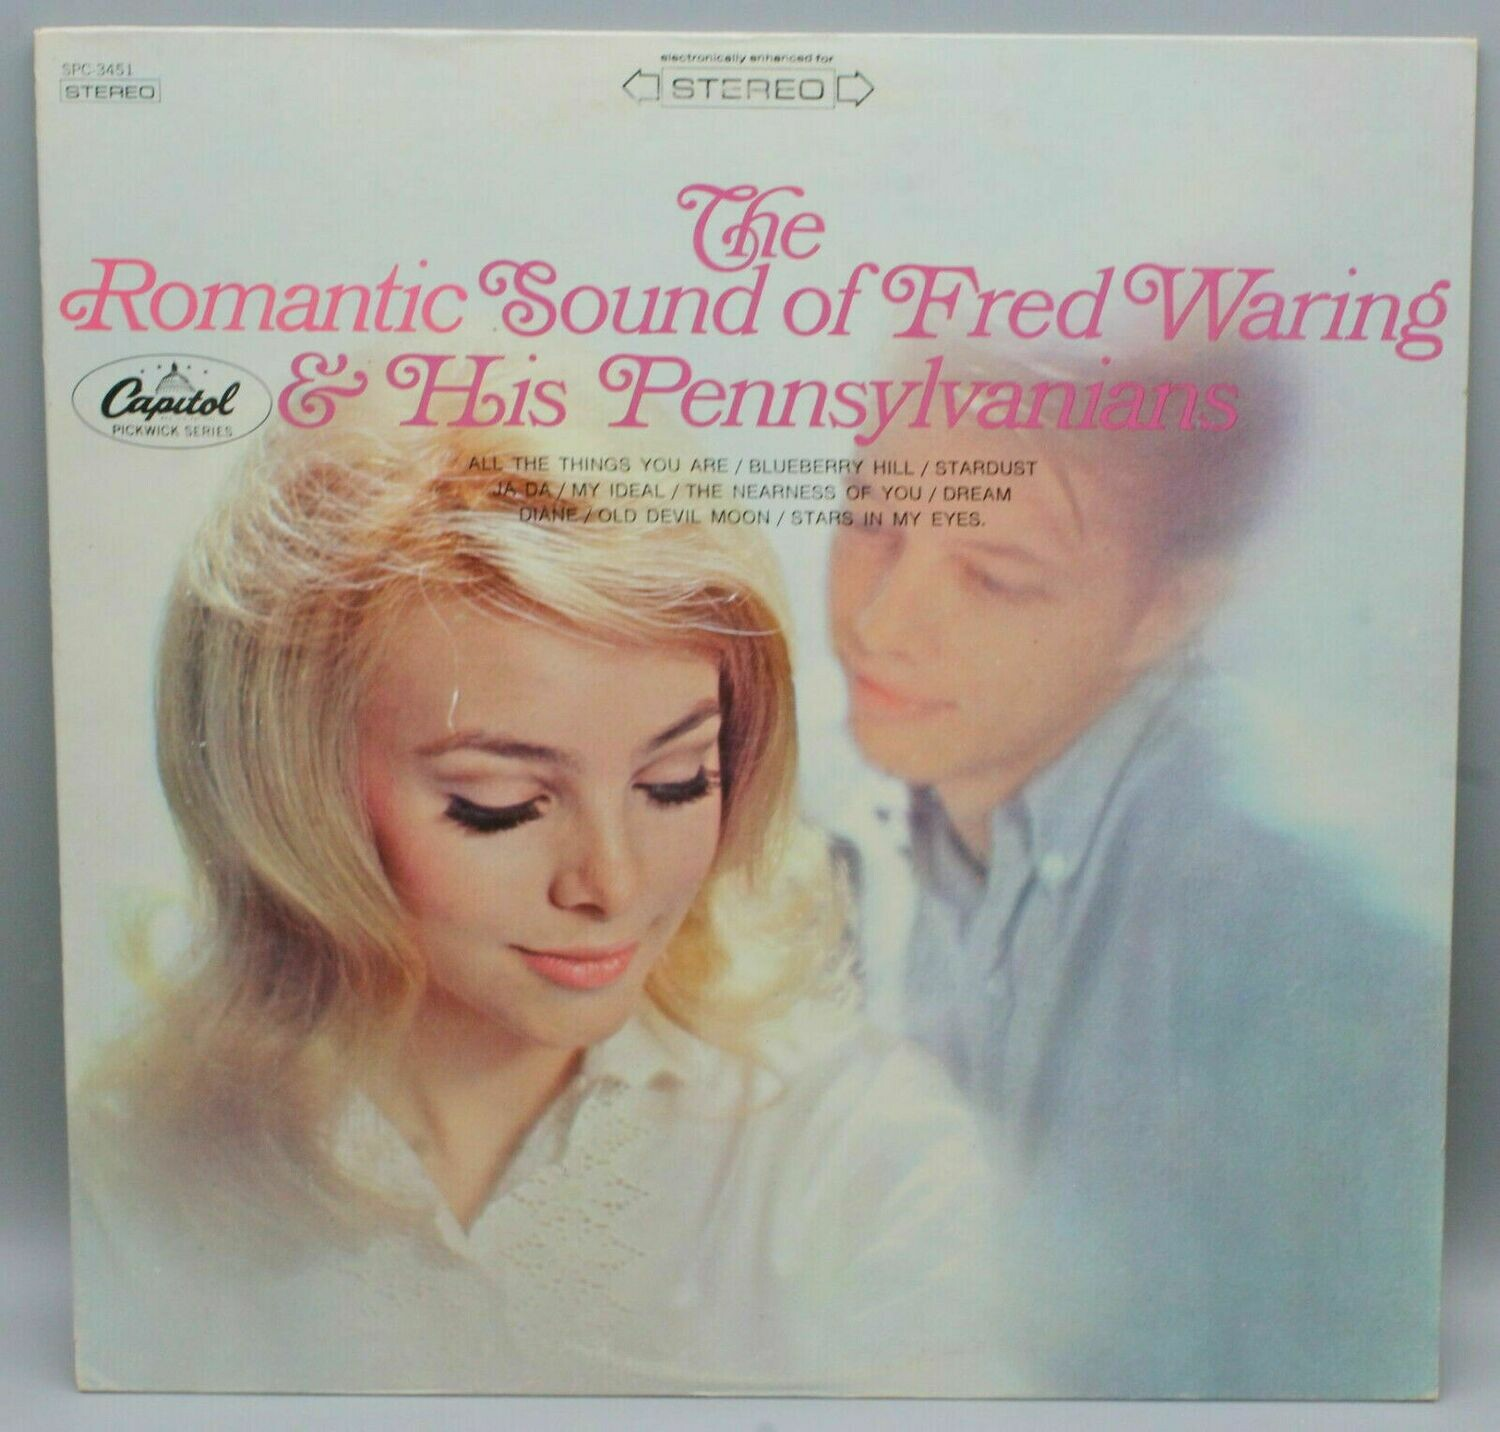 Fred Waring - The Romantic Sound of Fred Waring and His Pennsylvanians